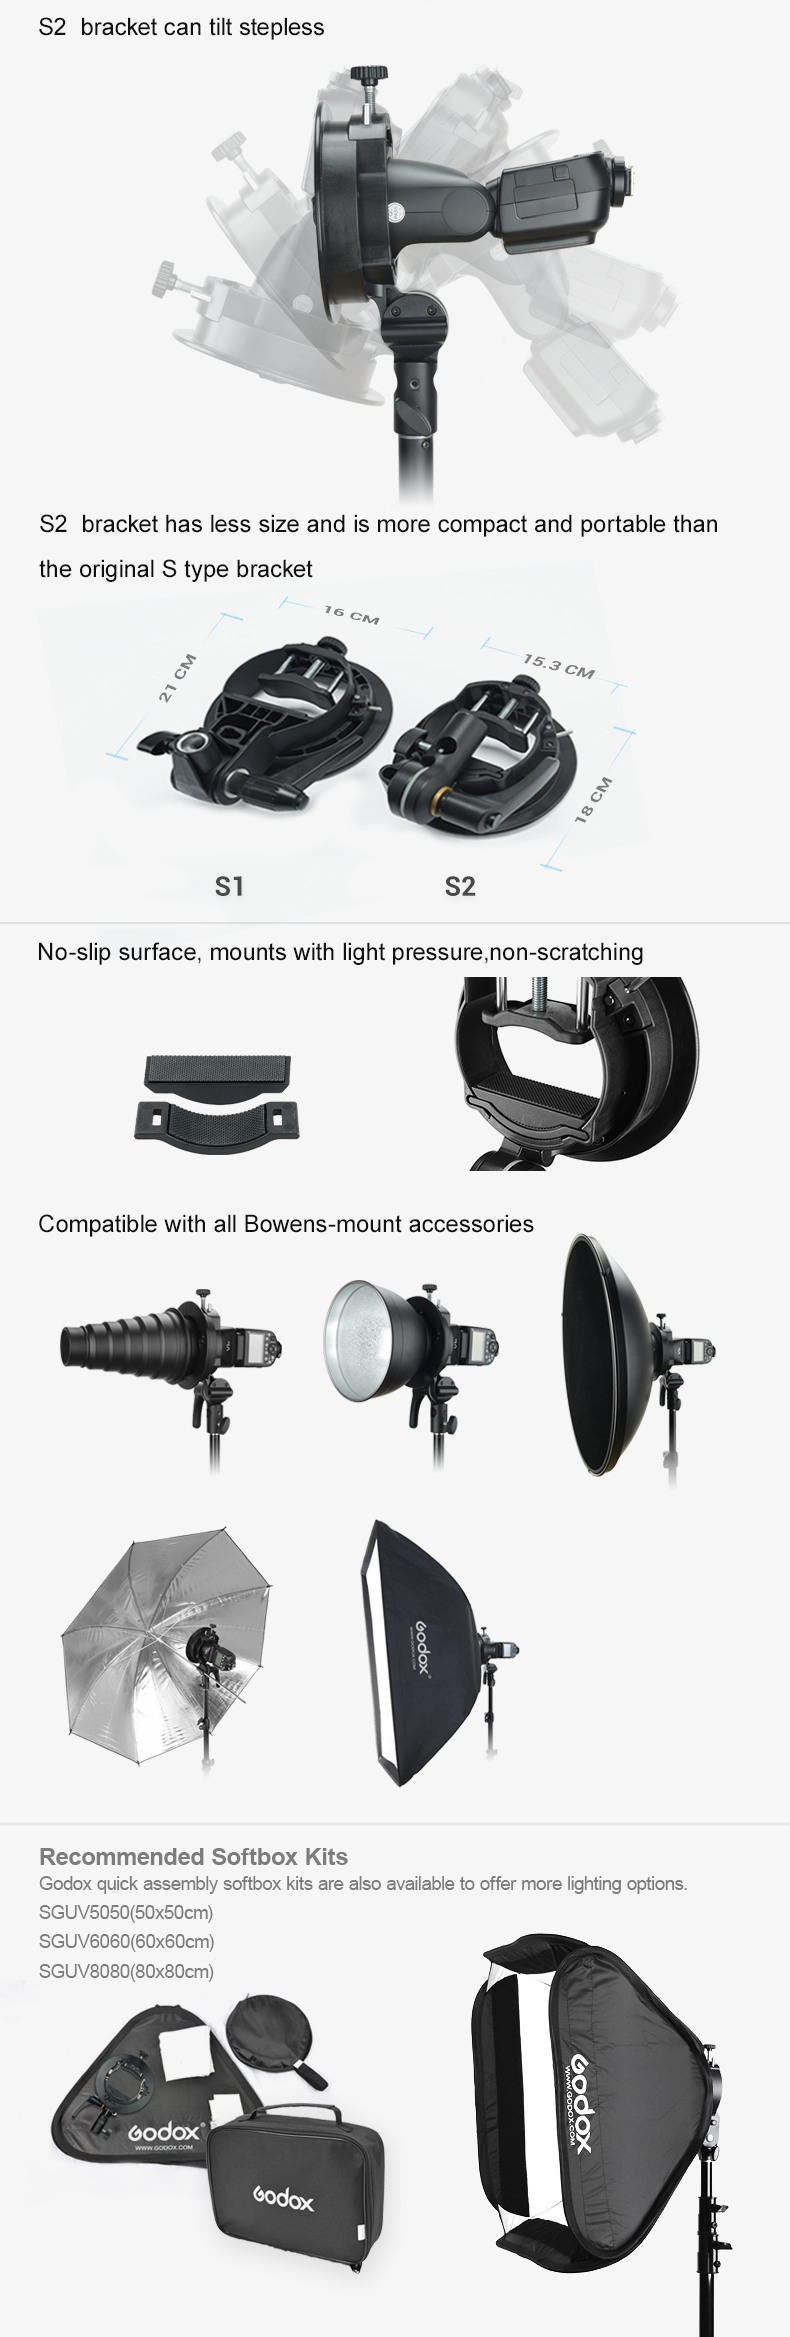 Godox S2 Speedlite. S2 bracket can tilt stepless. S2 is more compact and portable than S1 type bracket. Recommended Softbox kits.